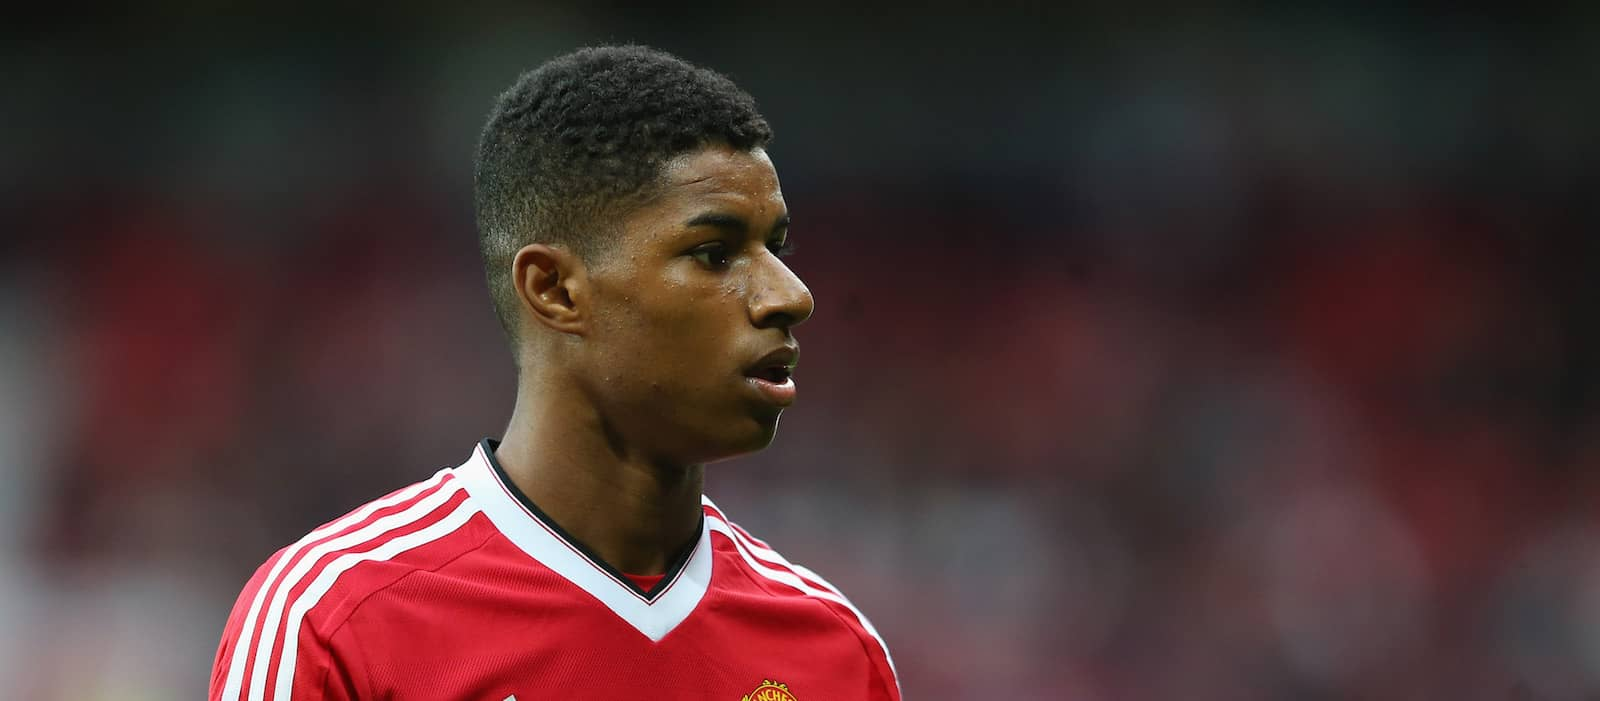 Manchester United's Marcus Rashford set for England debut against Australia